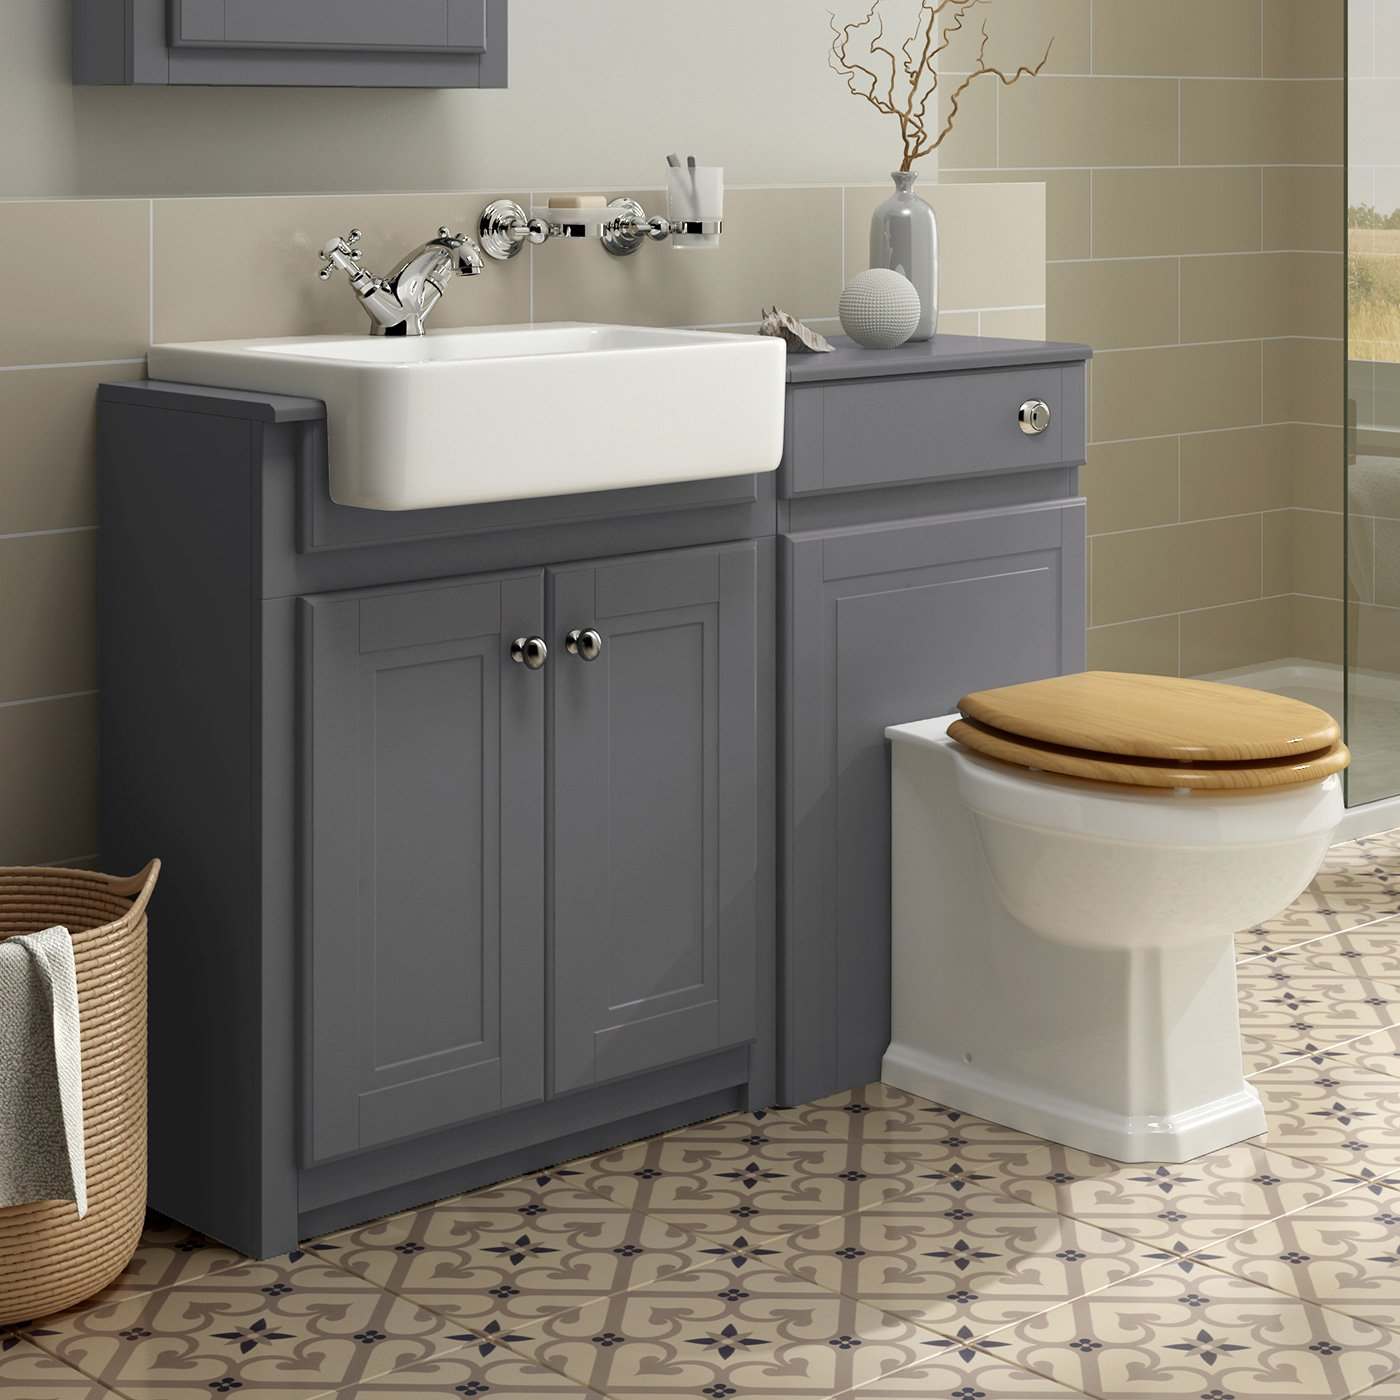 1100mm Combined Vanity Unit Toilet Basin Grey Bathroom Furniture Storage Sink Buy Online In French Guiana At Frenchguiana Desertcart Com Productid 54509350